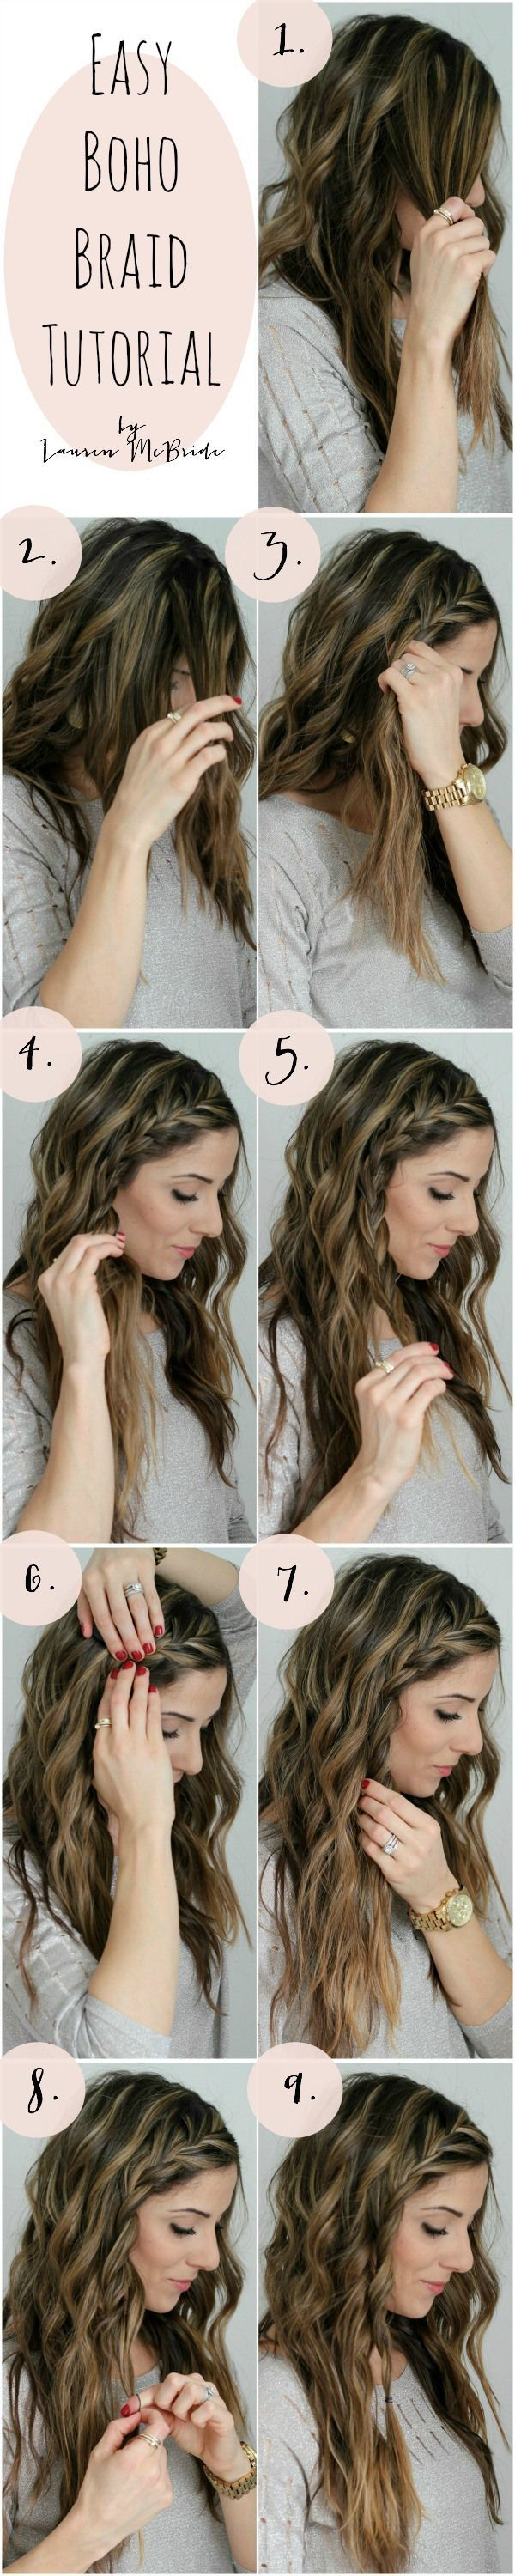 9 Braided Ways to Style Your Long Hair   Pretty Designs   Hair ...